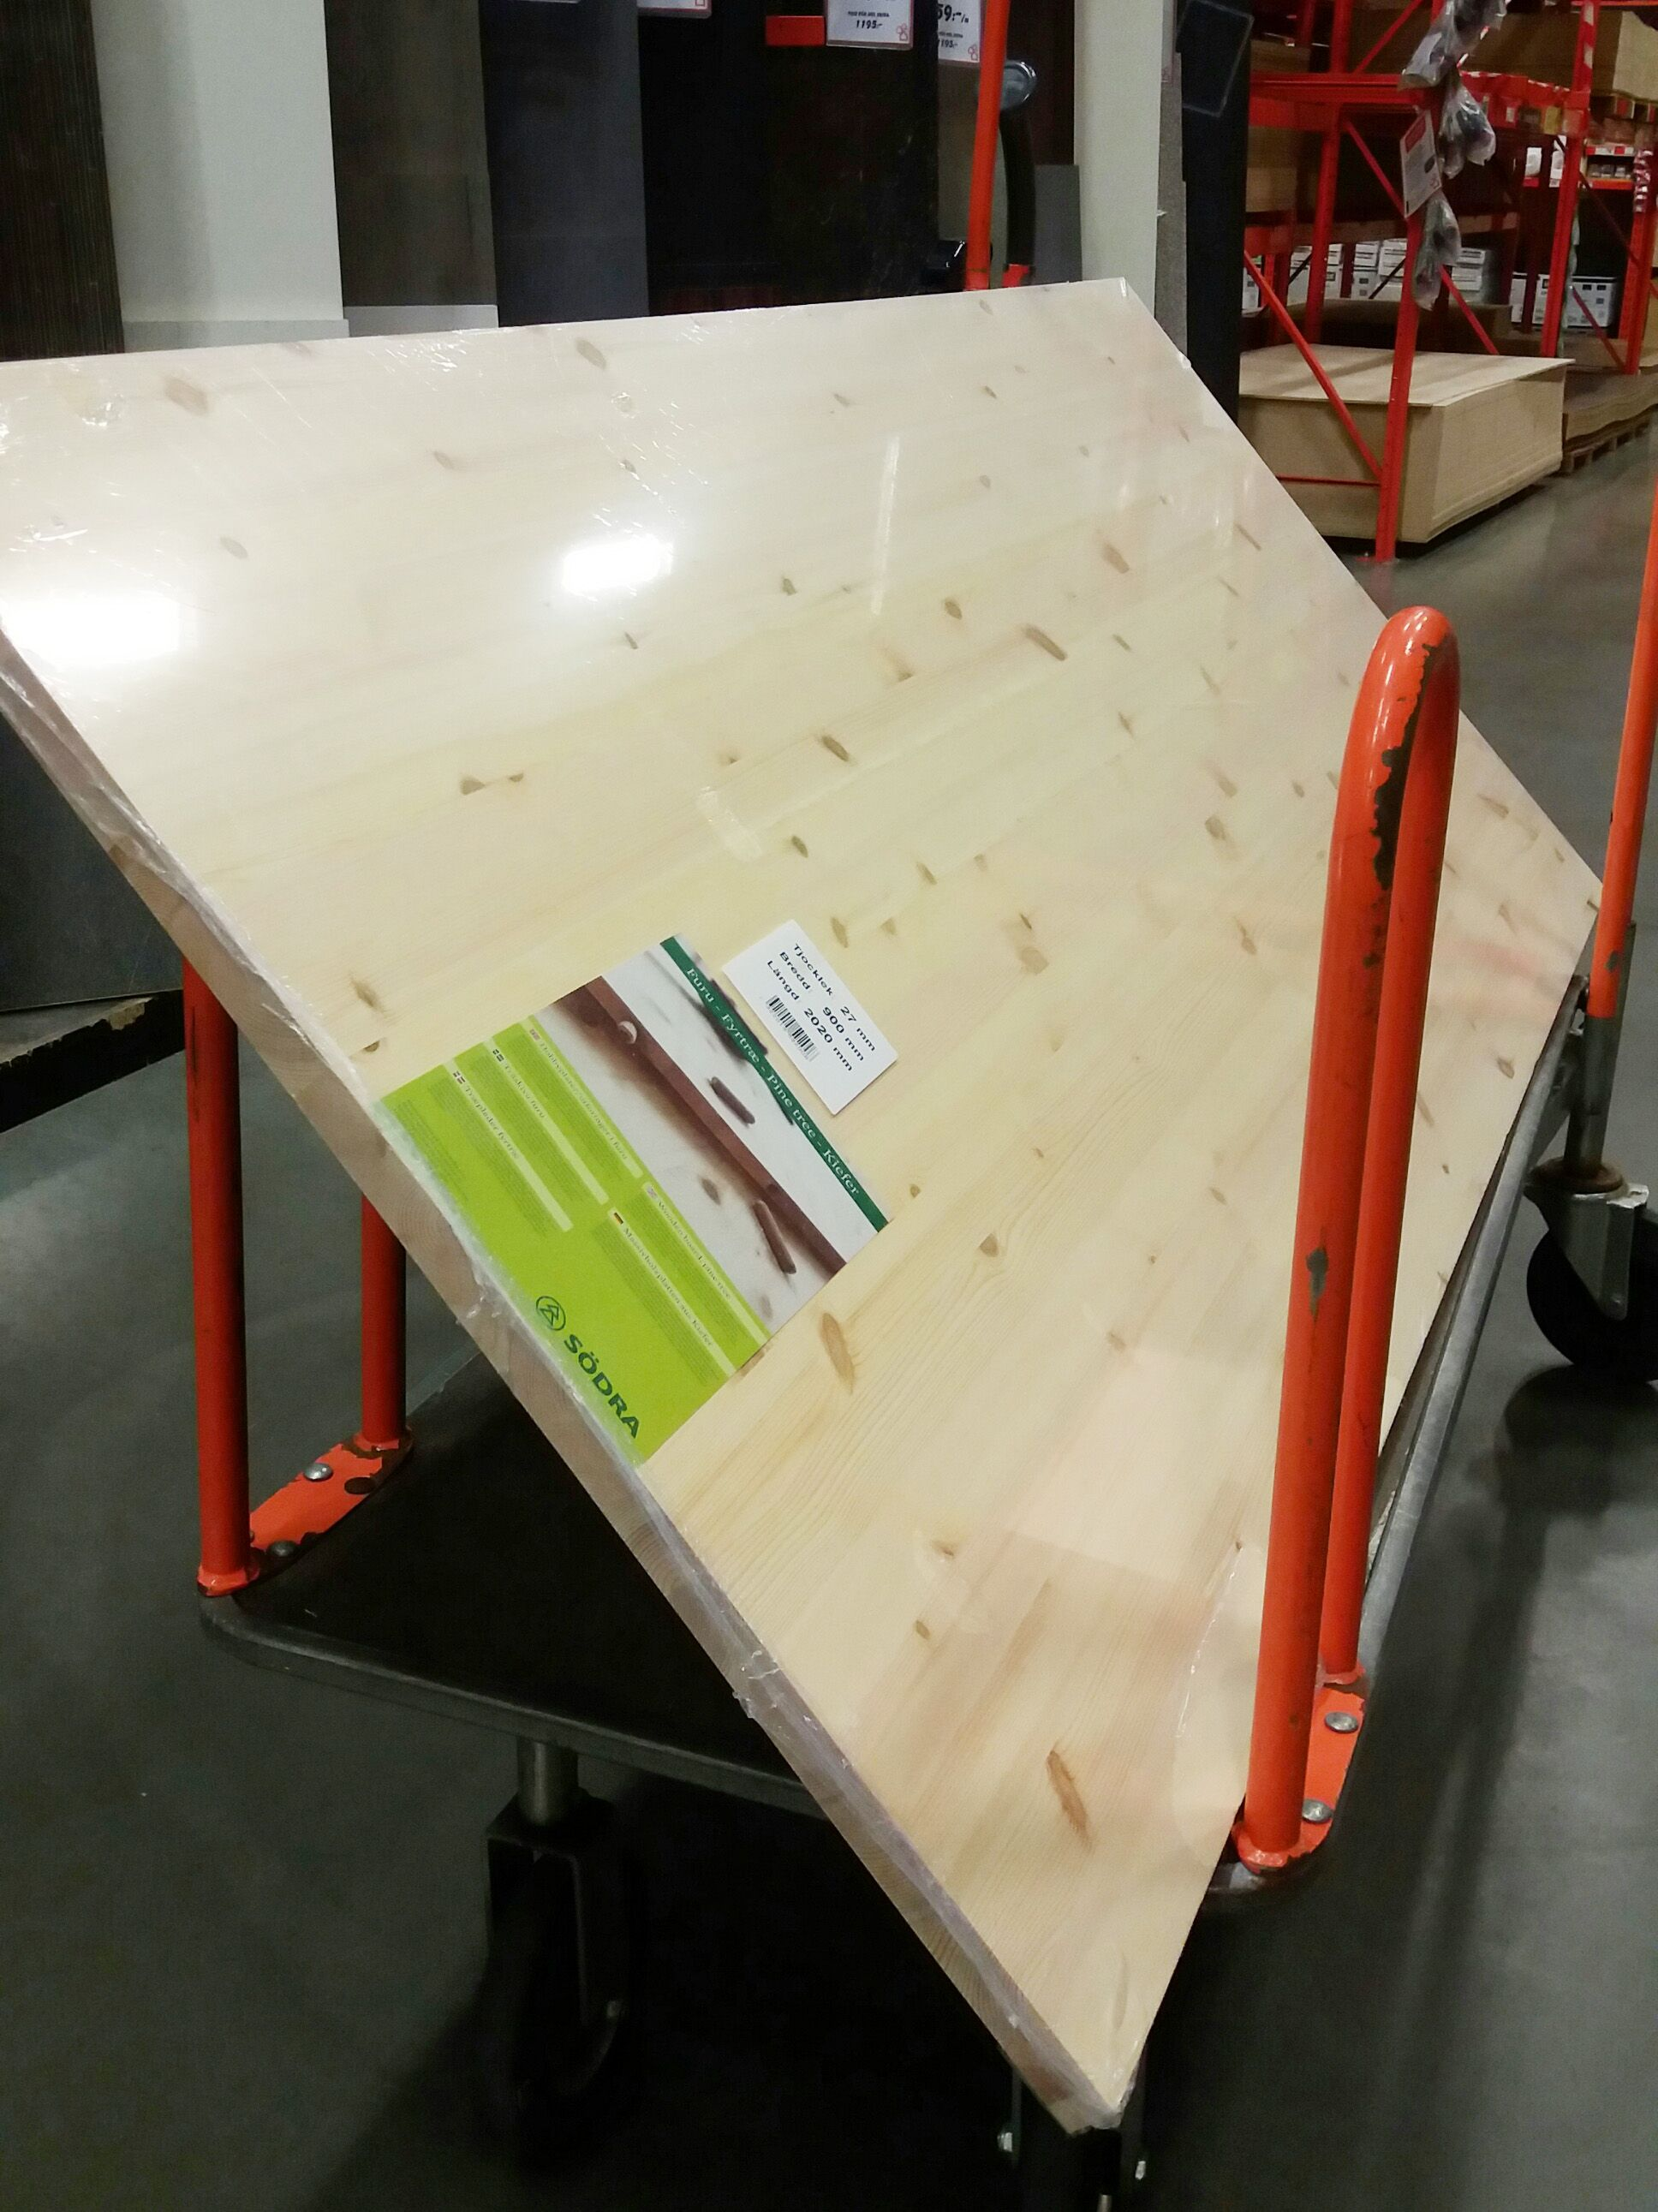 Diy sewing table ikea building my own sewing cutting table using ikea shelves  diy